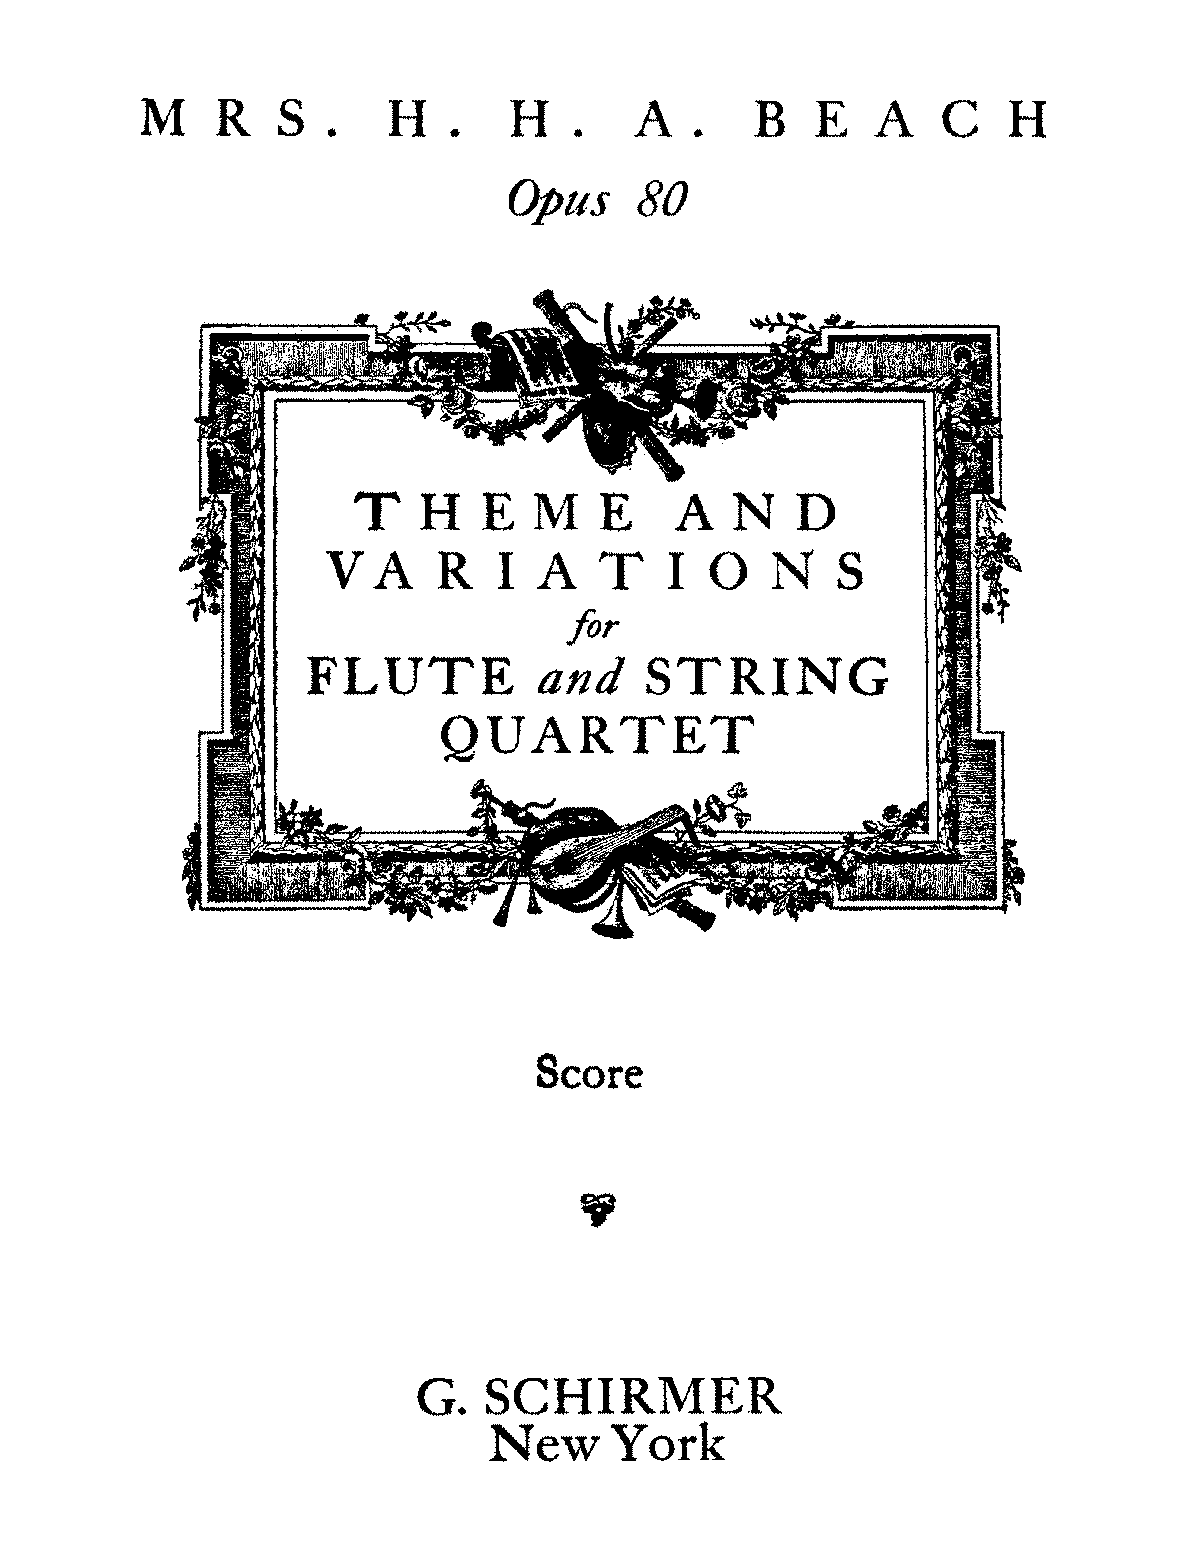 PMLP346848-Beach Theme and Variations Op.80.pdf